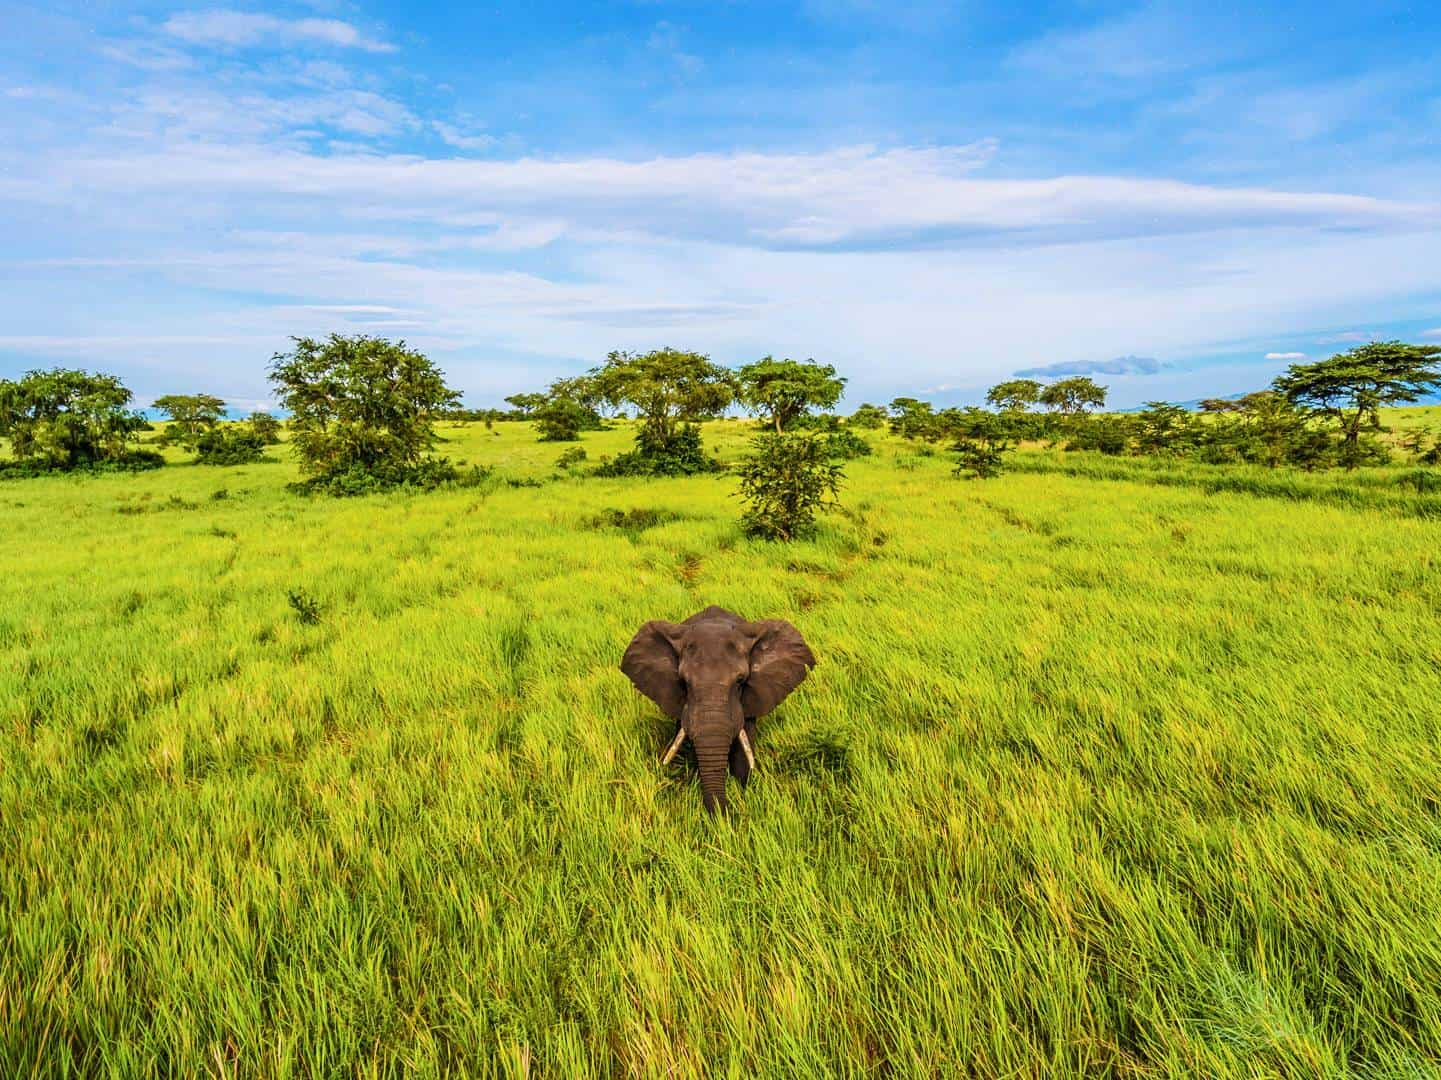 What Are The Best Times For Parents & Children To Visit Uganda On A Family Safari